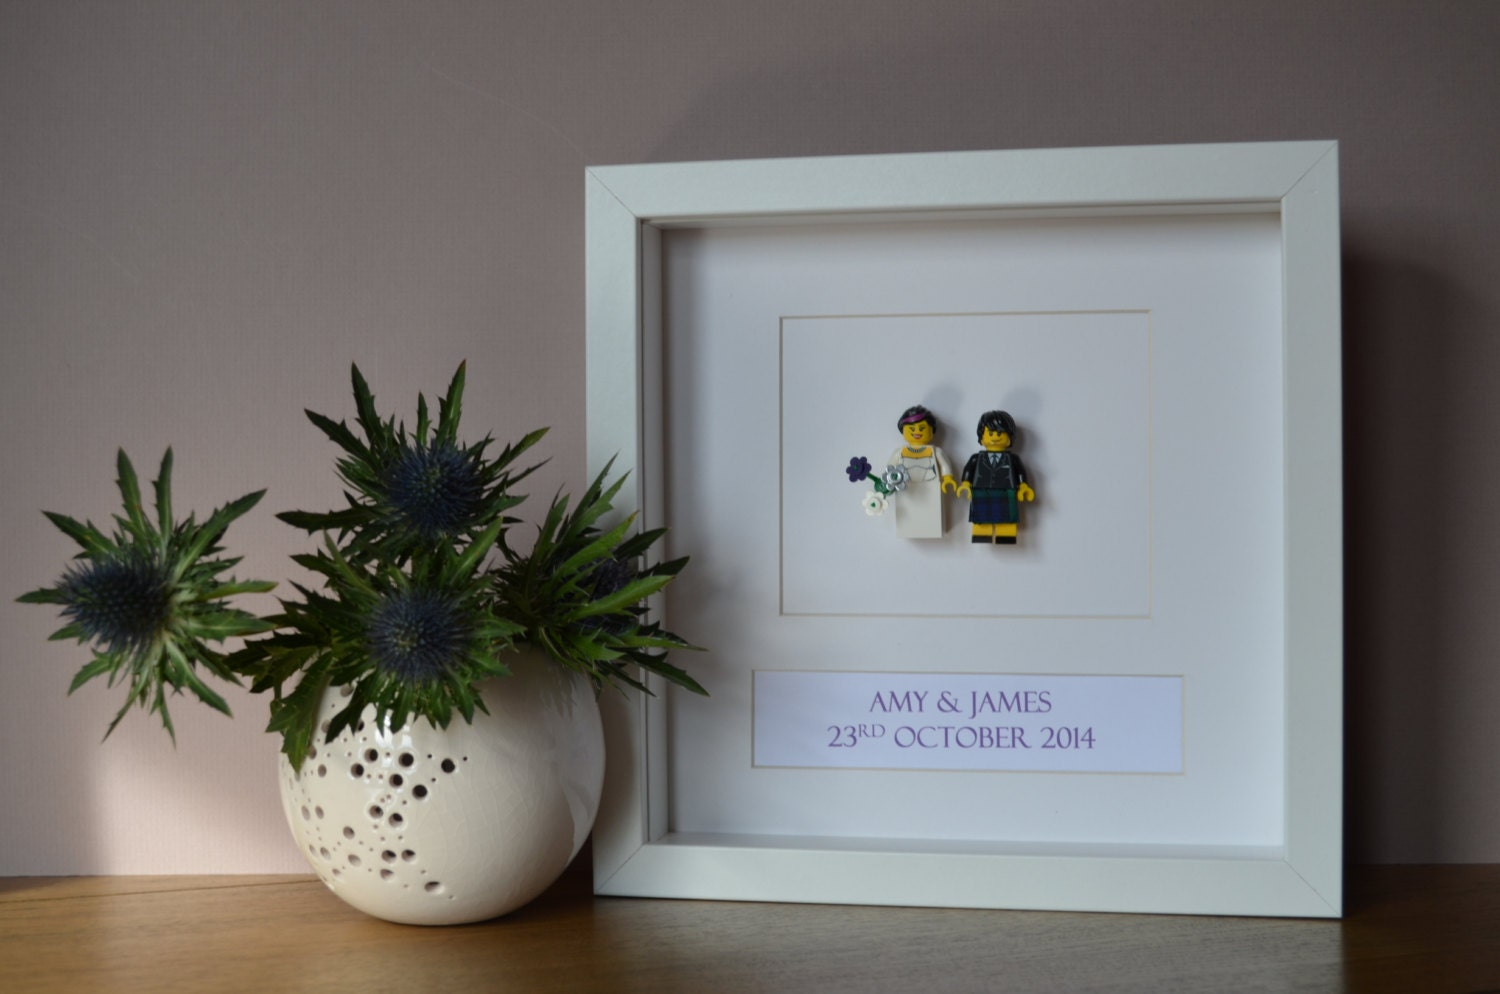 Scottish Wedding Gift For Bride : Personalised Framed Scottish Lego Wedding Gift made by FankleFox